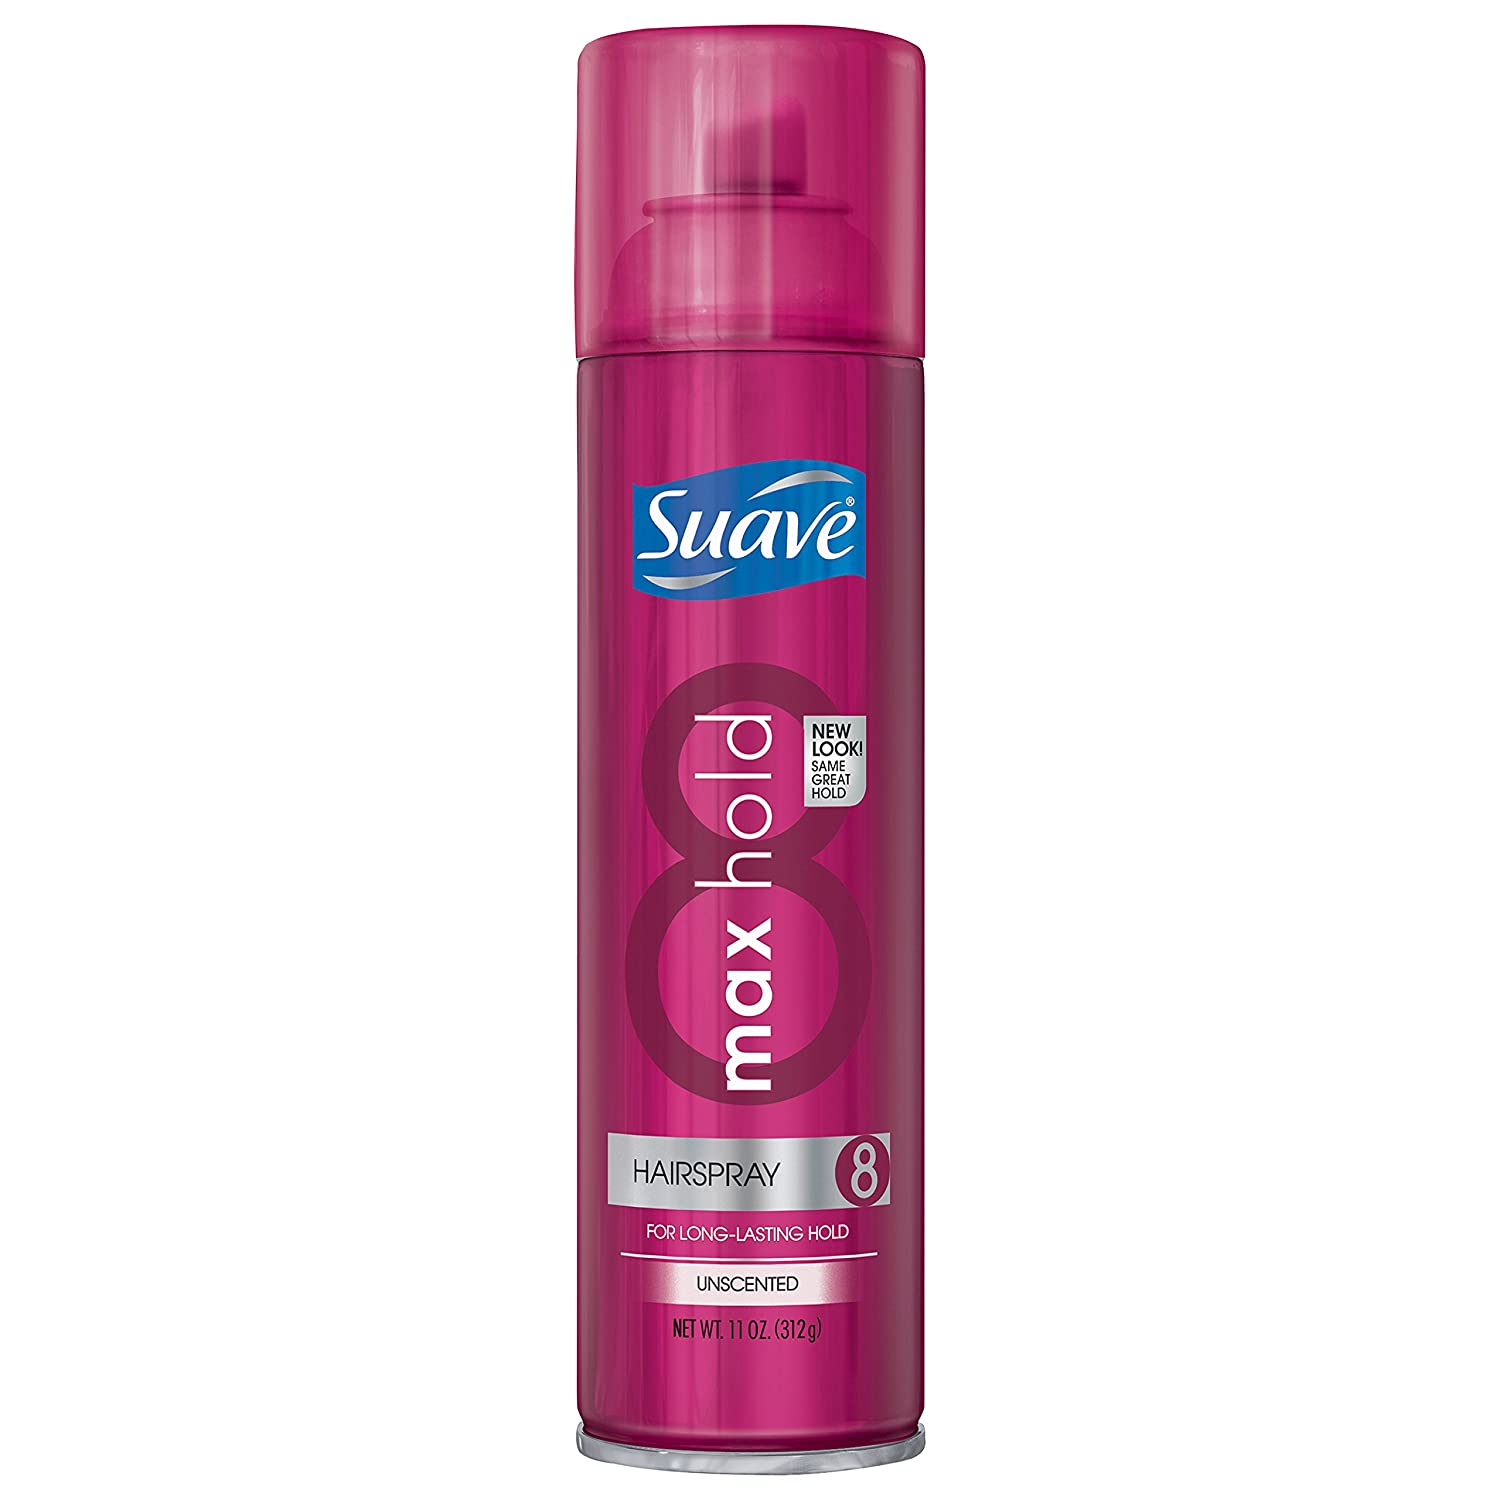 Suave Max Hold Unscented Hairspray, 11 oz : Hairspray : Beauty